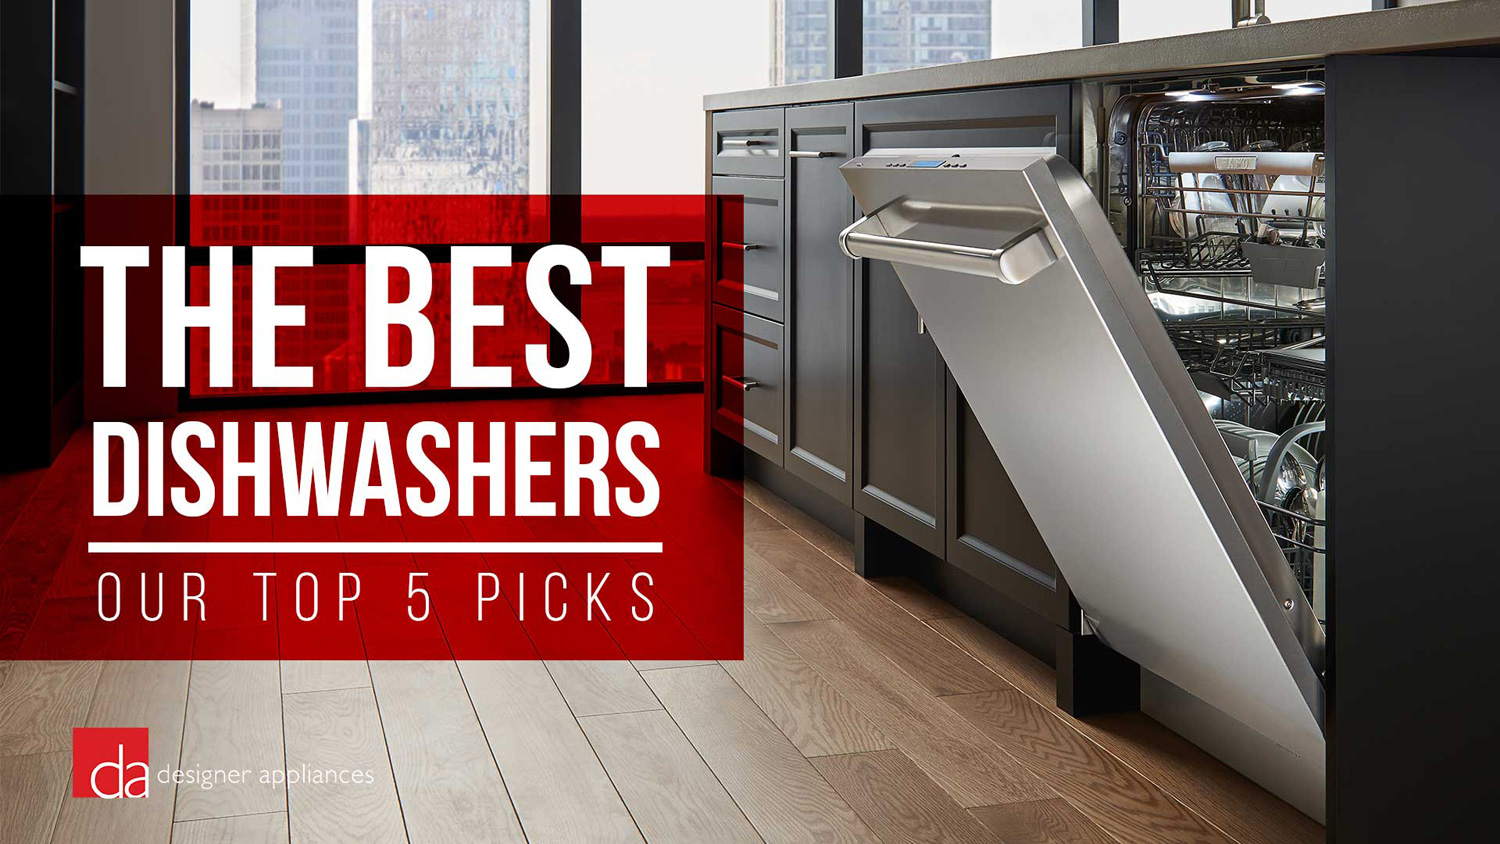 Miele Dishwasher Reviews >> Best Dishwashers of 2020 - Our Top 5 Picks